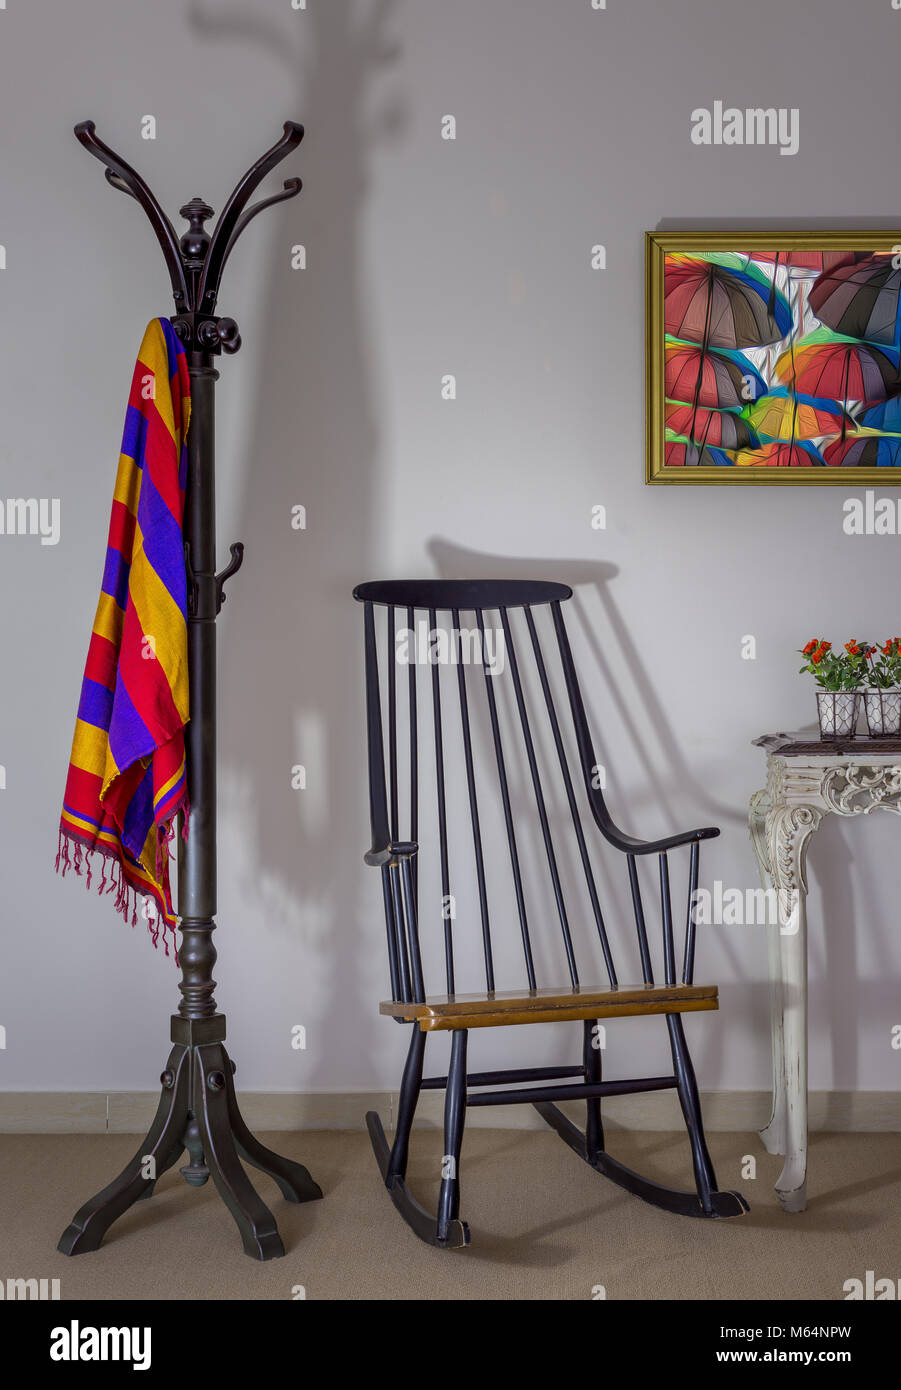 Interior shot of vintage rocking chair, coat hanger and flower pot on old style vintage table on background of off - Stock Image